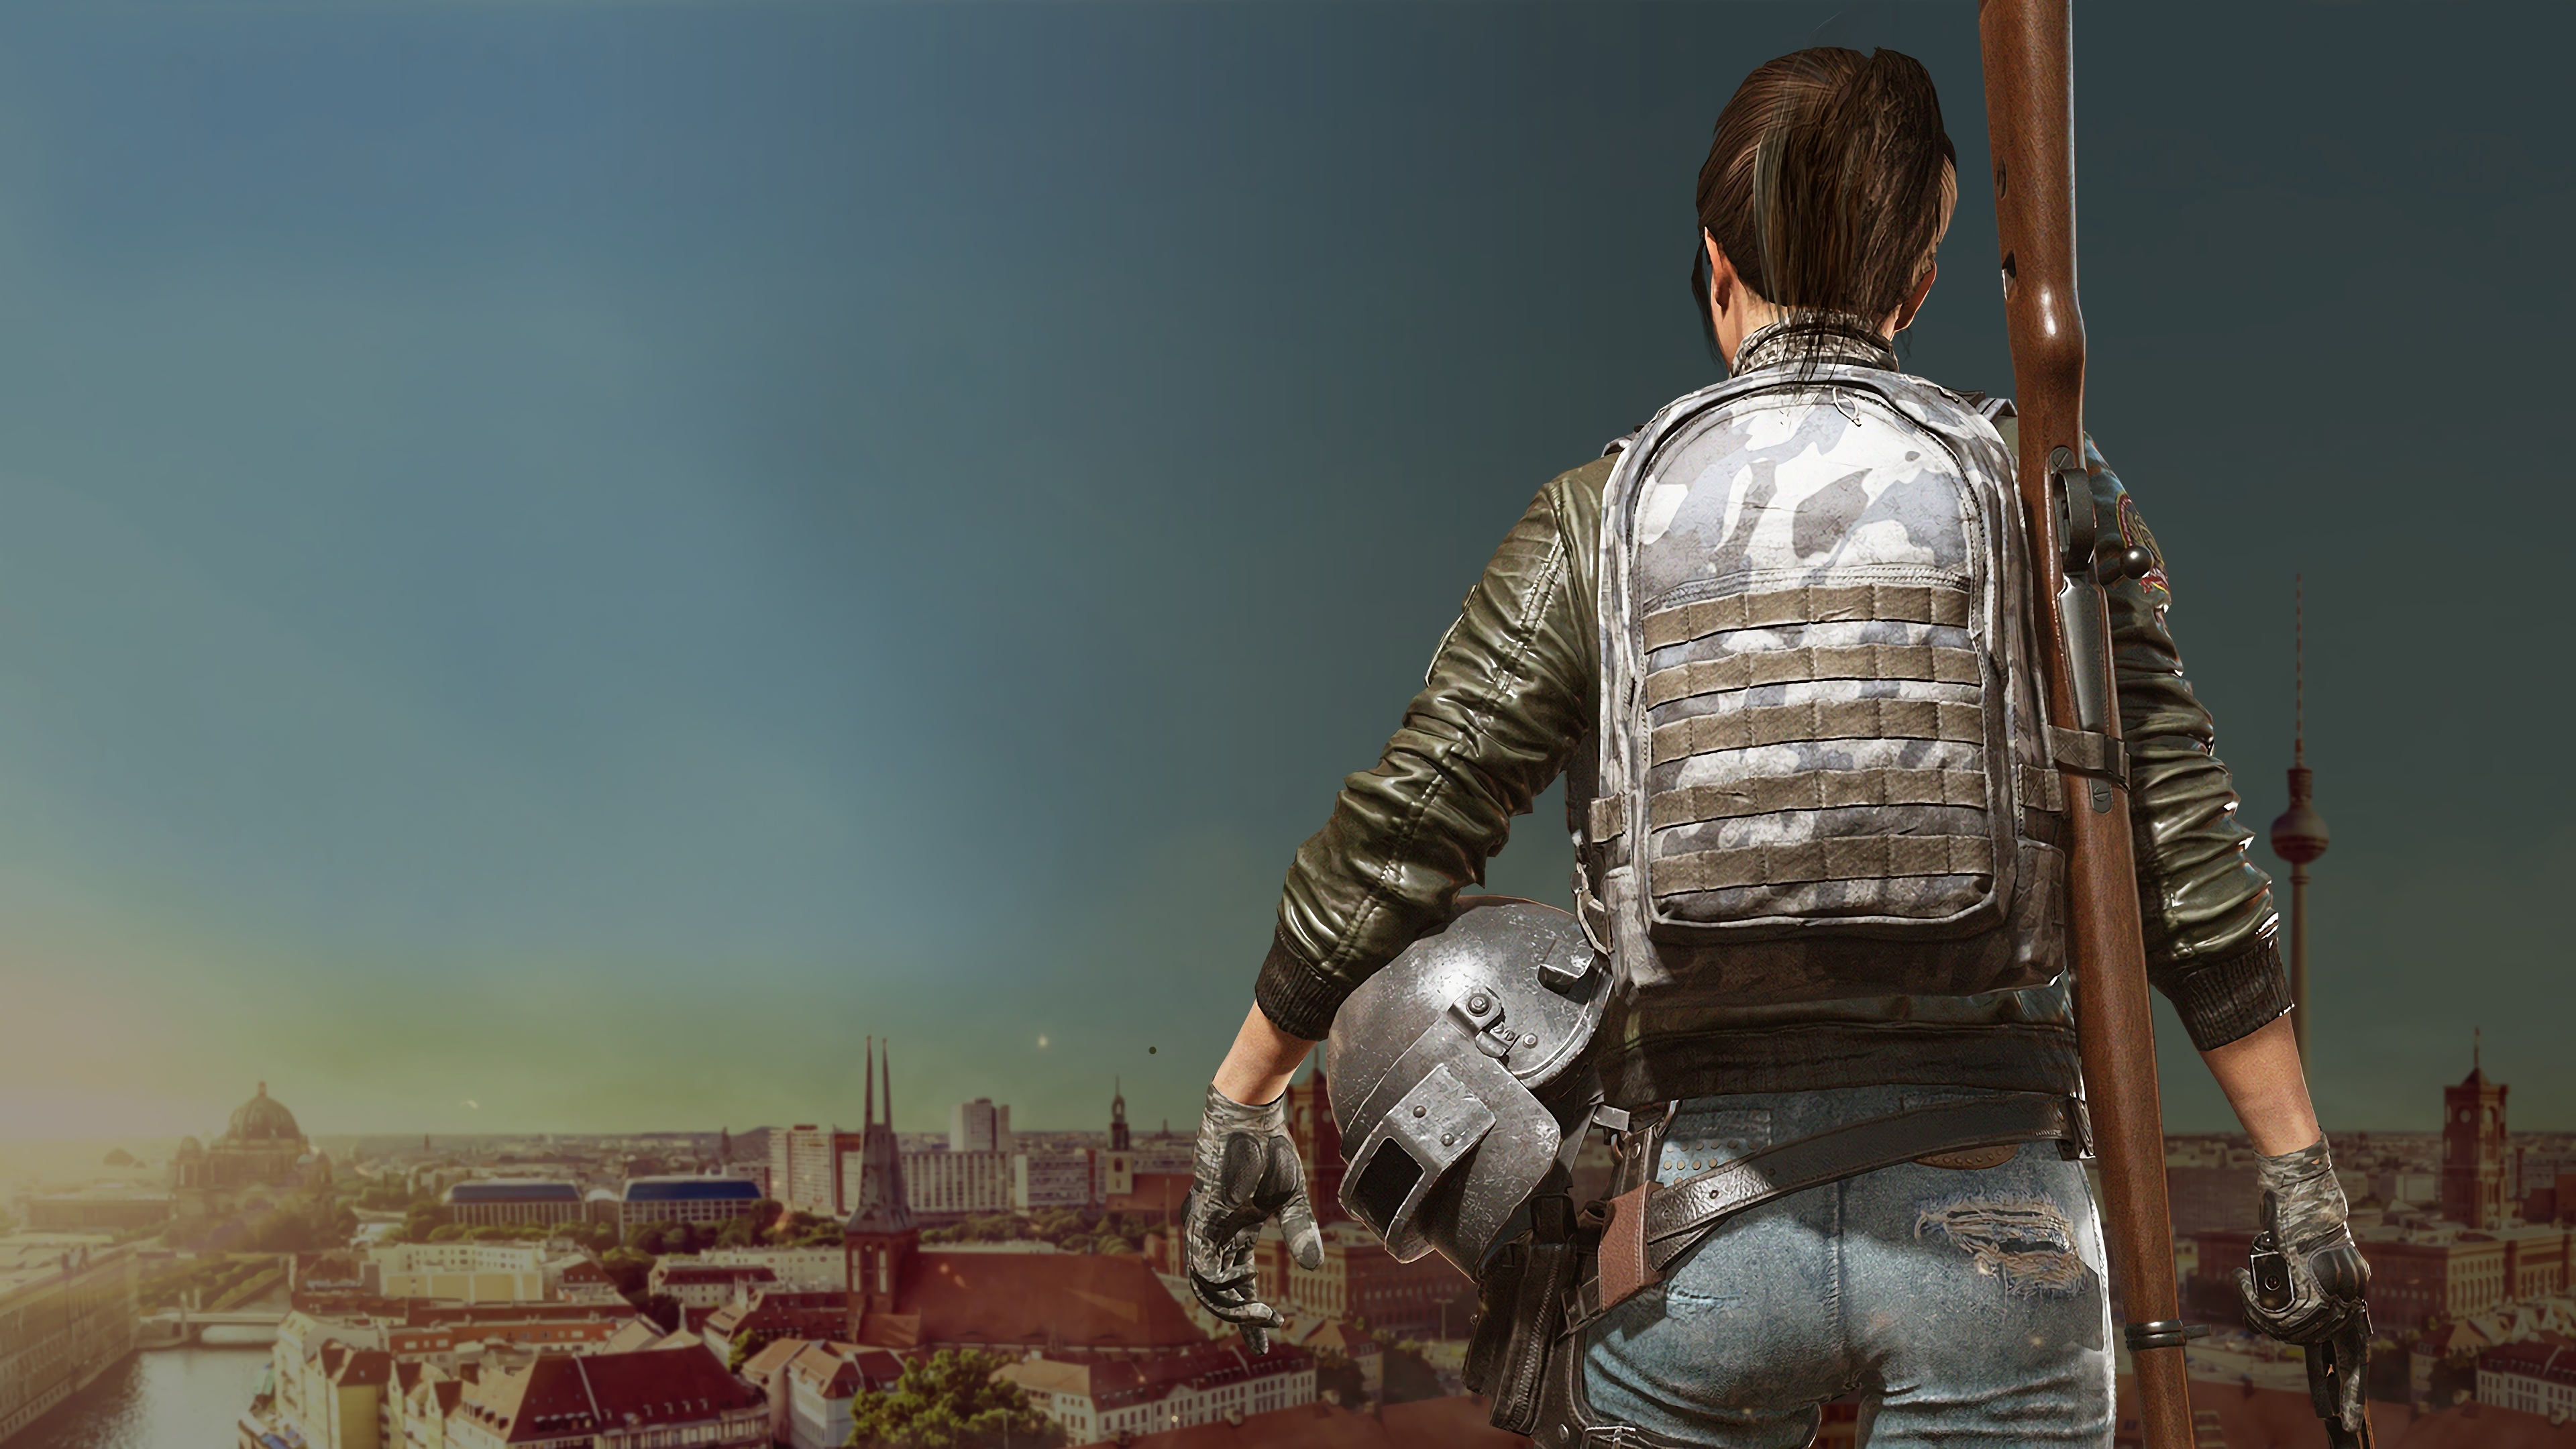 1366x768 Pubg Girl 1366x768 Resolution Hd 4k Wallpapers: Game Girl Pubg 4k, HD Games, 4k Wallpapers, Images